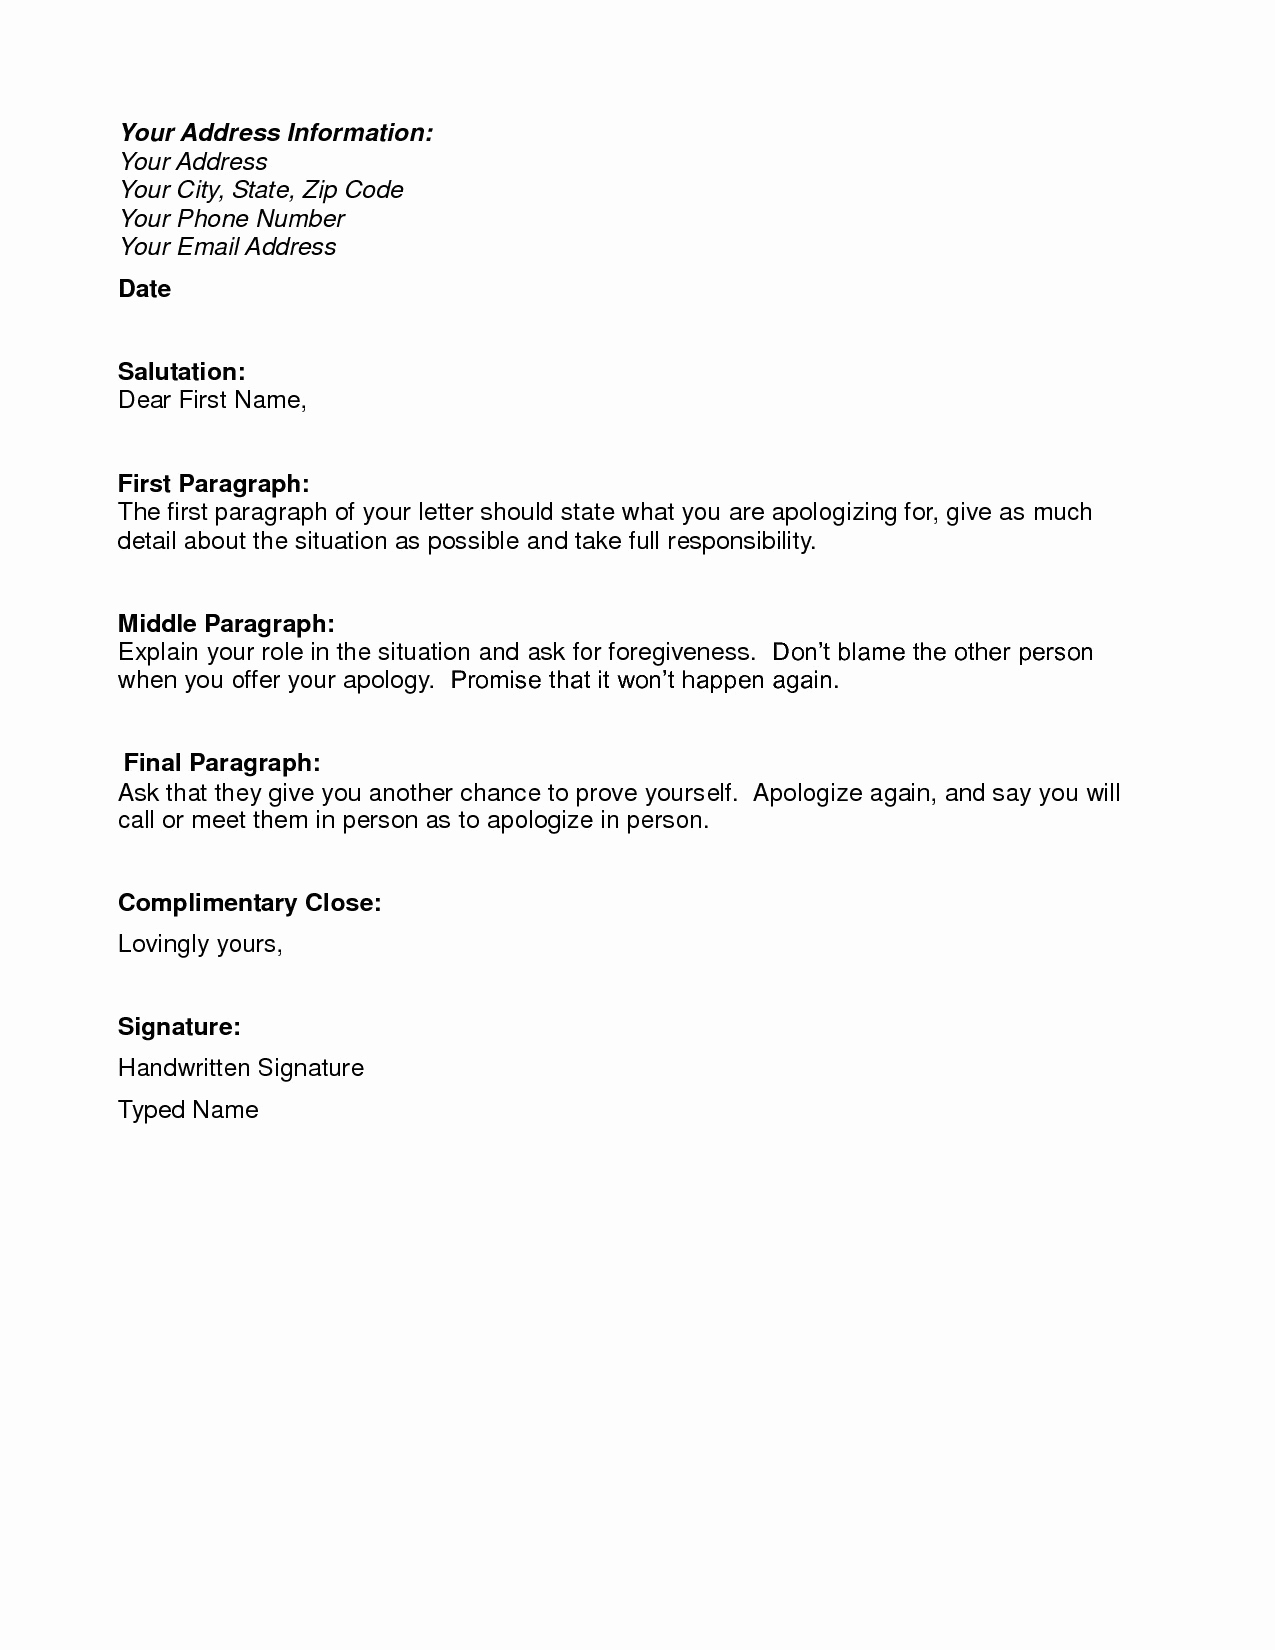 Letter for Donations for Fundraiser Template - Letter asking for Donations Template Best New Letter Template for